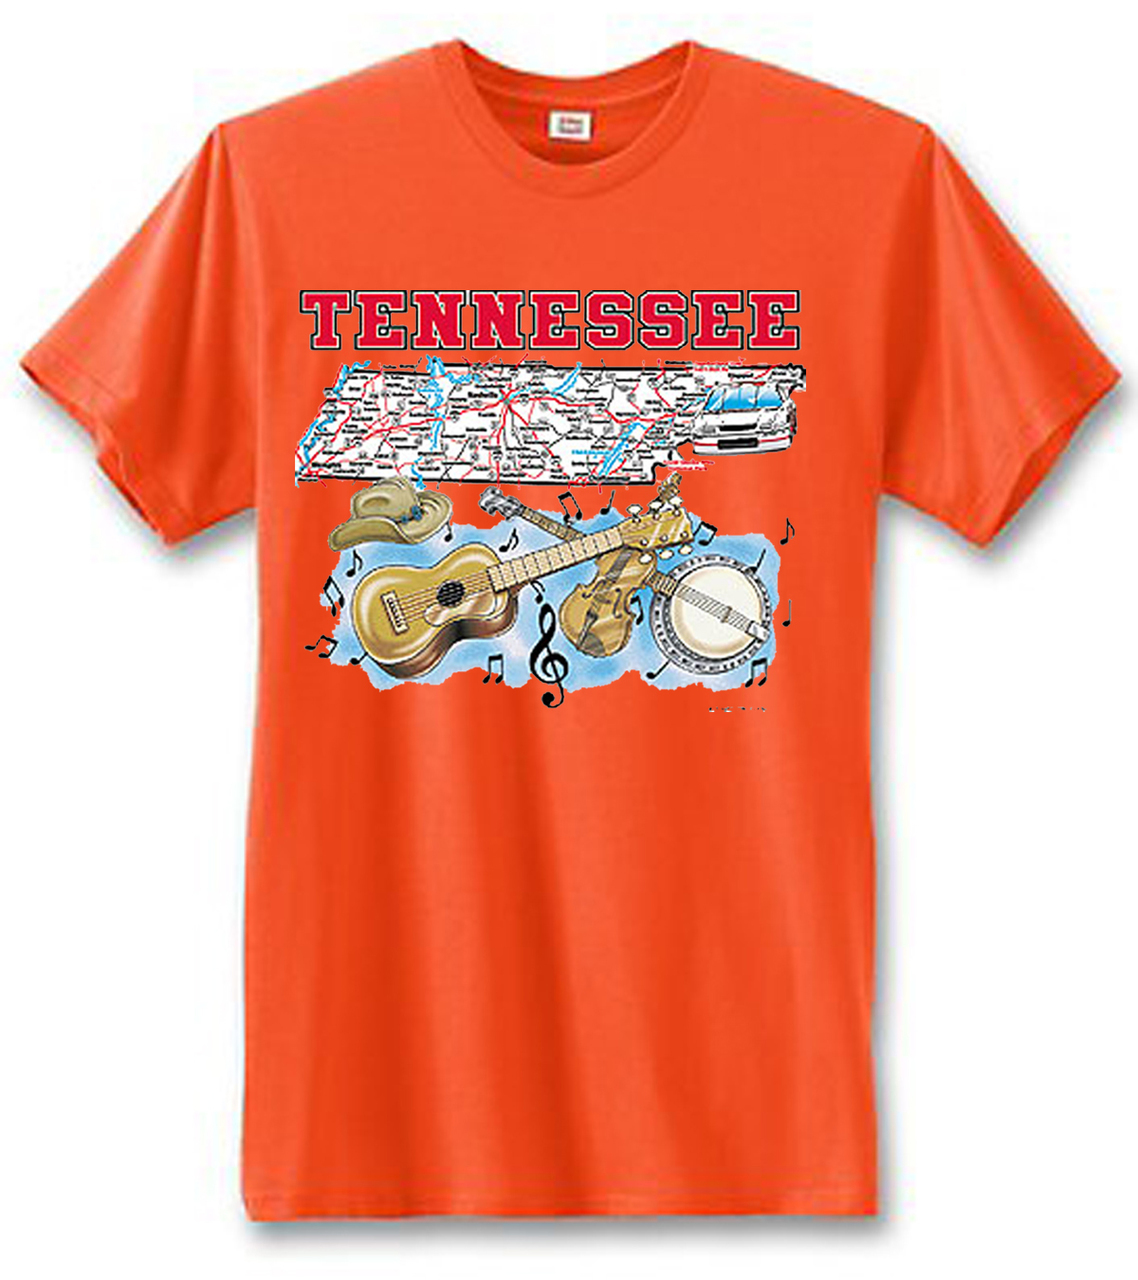 Tennessee Country Music State Men's Short Sleeve T-Shirt